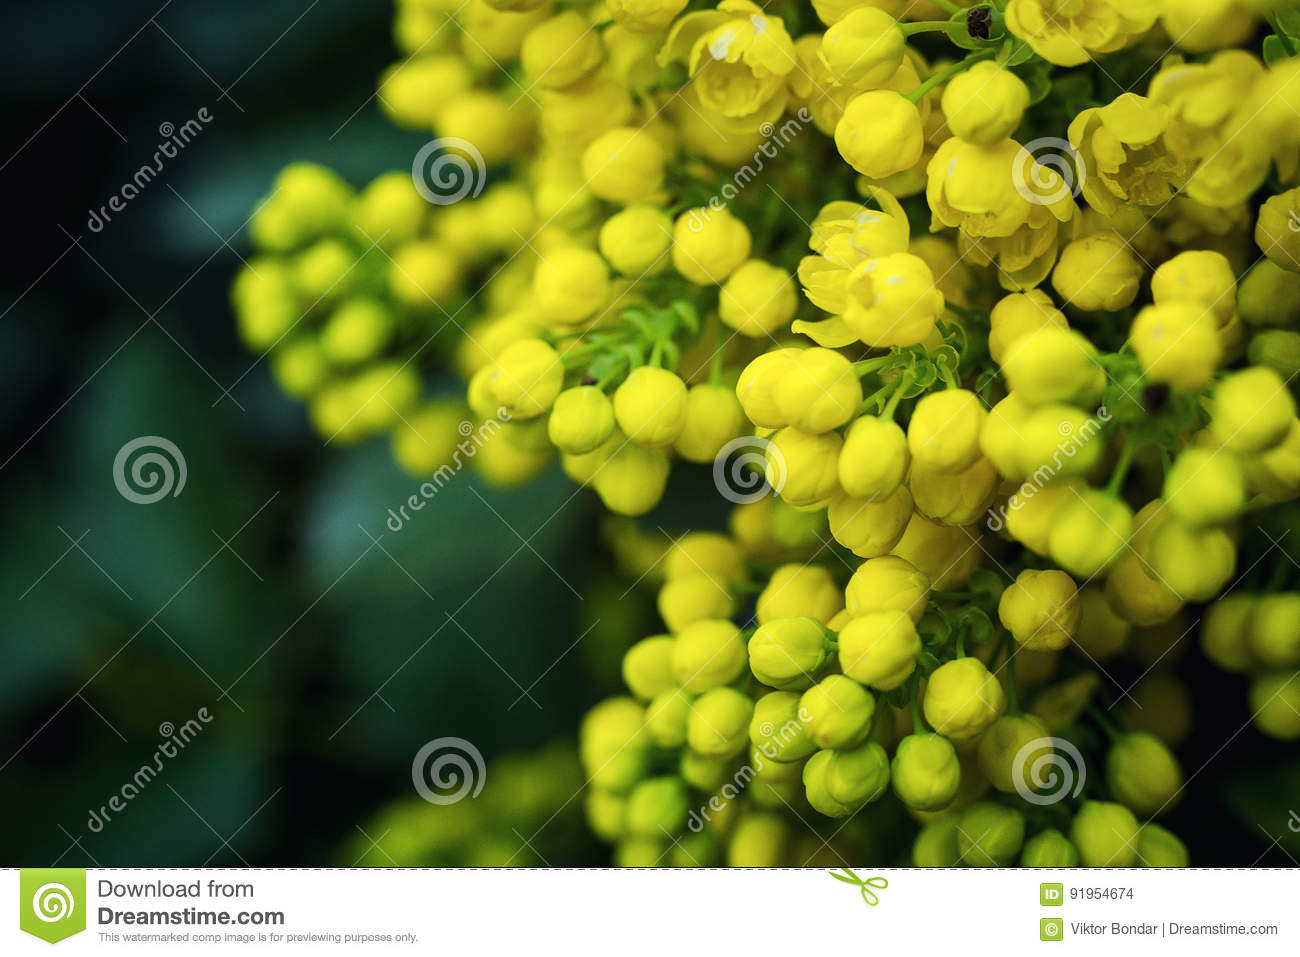 Flower oregon grapeflowering mahonia aquifolium oregon grape wi flower oregon grapeflowering mahonia aquifolium oregon grape wild flower holly leaves evergreen in spring timeflowering bush yellow flowersclusters of mightylinksfo